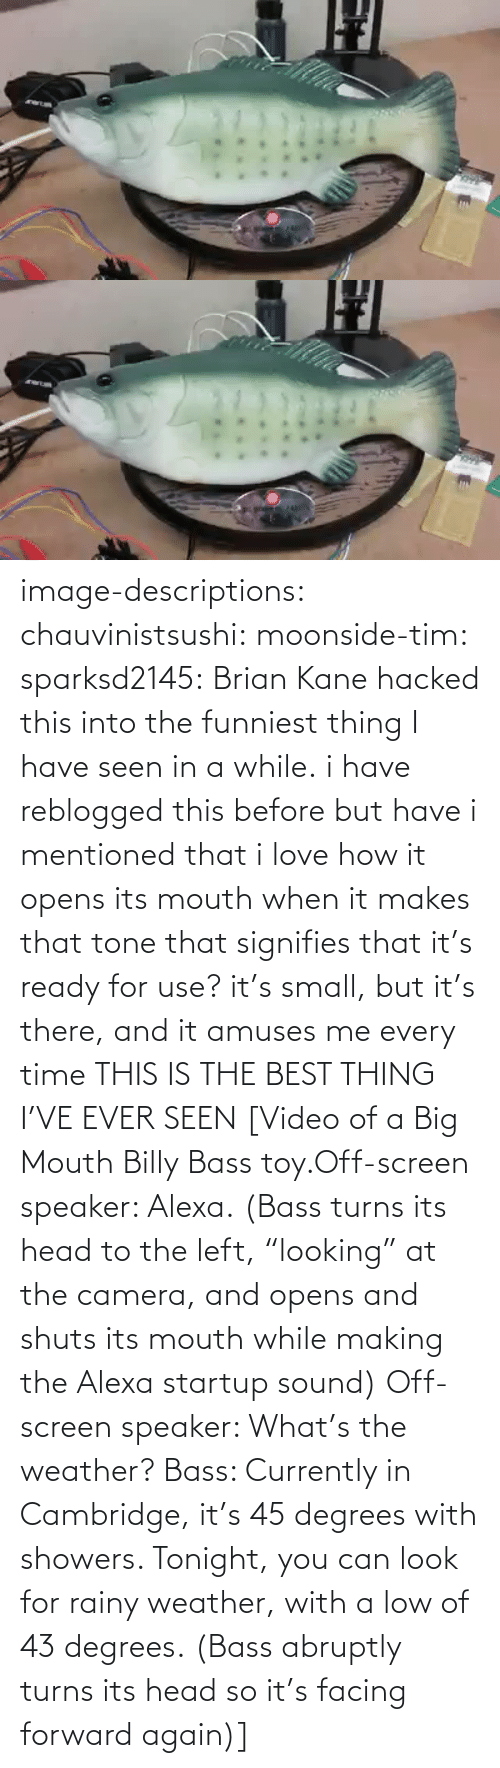 "funniest: image-descriptions:  chauvinistsushi:  moonside-tim:  sparksd2145:  Brian Kane hacked this into the funniest thing I have seen in a while.  i have reblogged this before but have i mentioned that i love how it opens its mouth when it makes that tone that signifies that it's ready for use? it's small, but it's there, and it amuses me every time  THIS IS THE BEST THING I'VE EVER SEEN  [Video of a Big Mouth Billy Bass toy.Off-screen speaker: Alexa. (Bass turns its head to the left, ""looking"" at the camera, and opens and shuts its mouth while making the Alexa startup sound)  Off-screen speaker: What's the weather? Bass: Currently in Cambridge, it's 45 degrees with showers. Tonight, you can look for rainy weather, with a low of 43 degrees. (Bass abruptly turns its head so it's facing forward again)]"